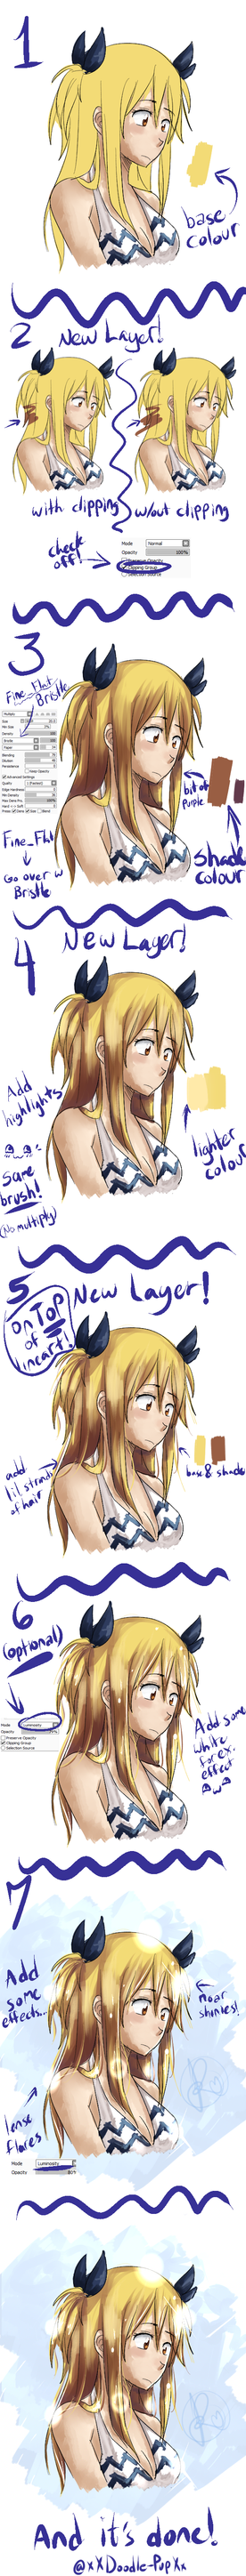 Hair coloring Tuto -new- by Jaymeri-kun